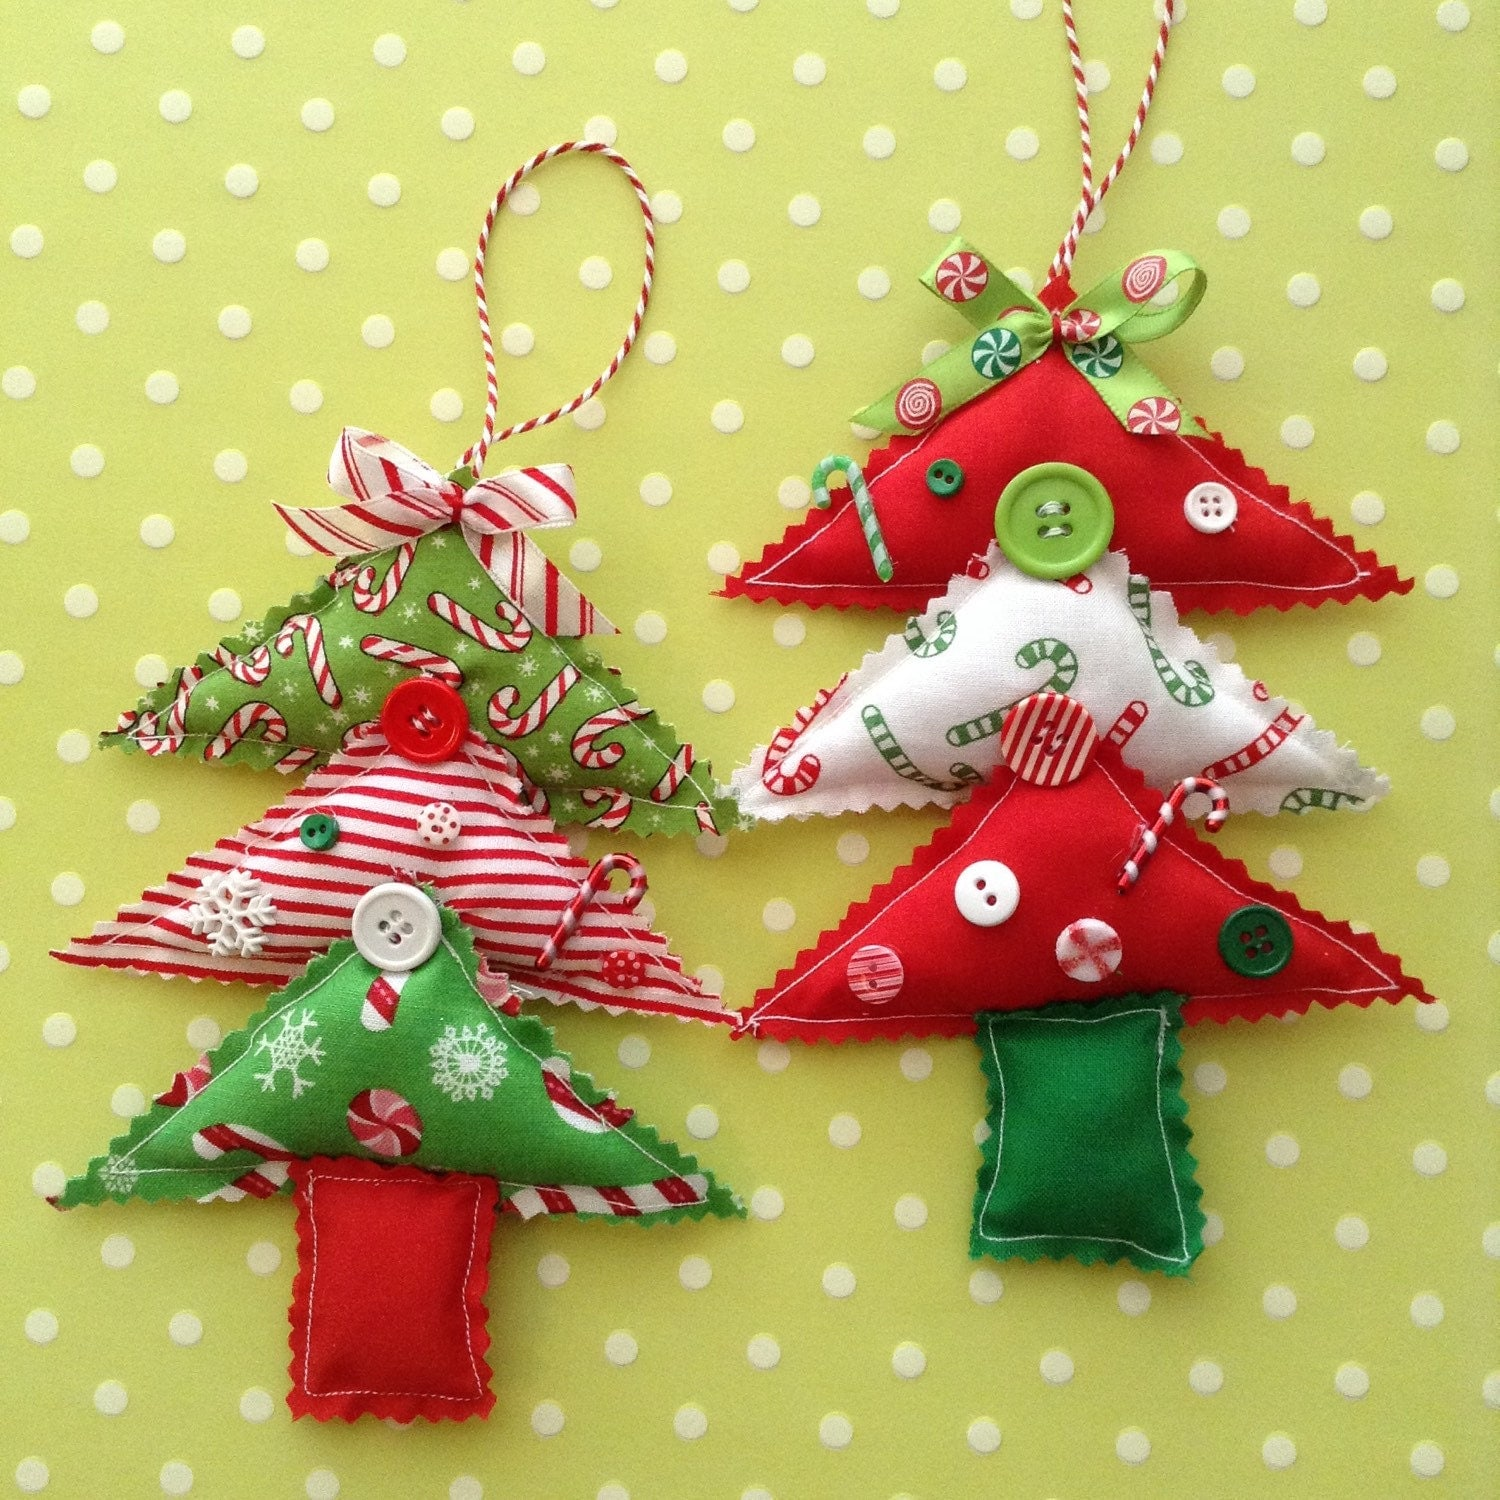 Bicycle Christmas Tree Decorations Ornaments: Christmas Tree Ornaments Fabric Christmas Tree Ornaments